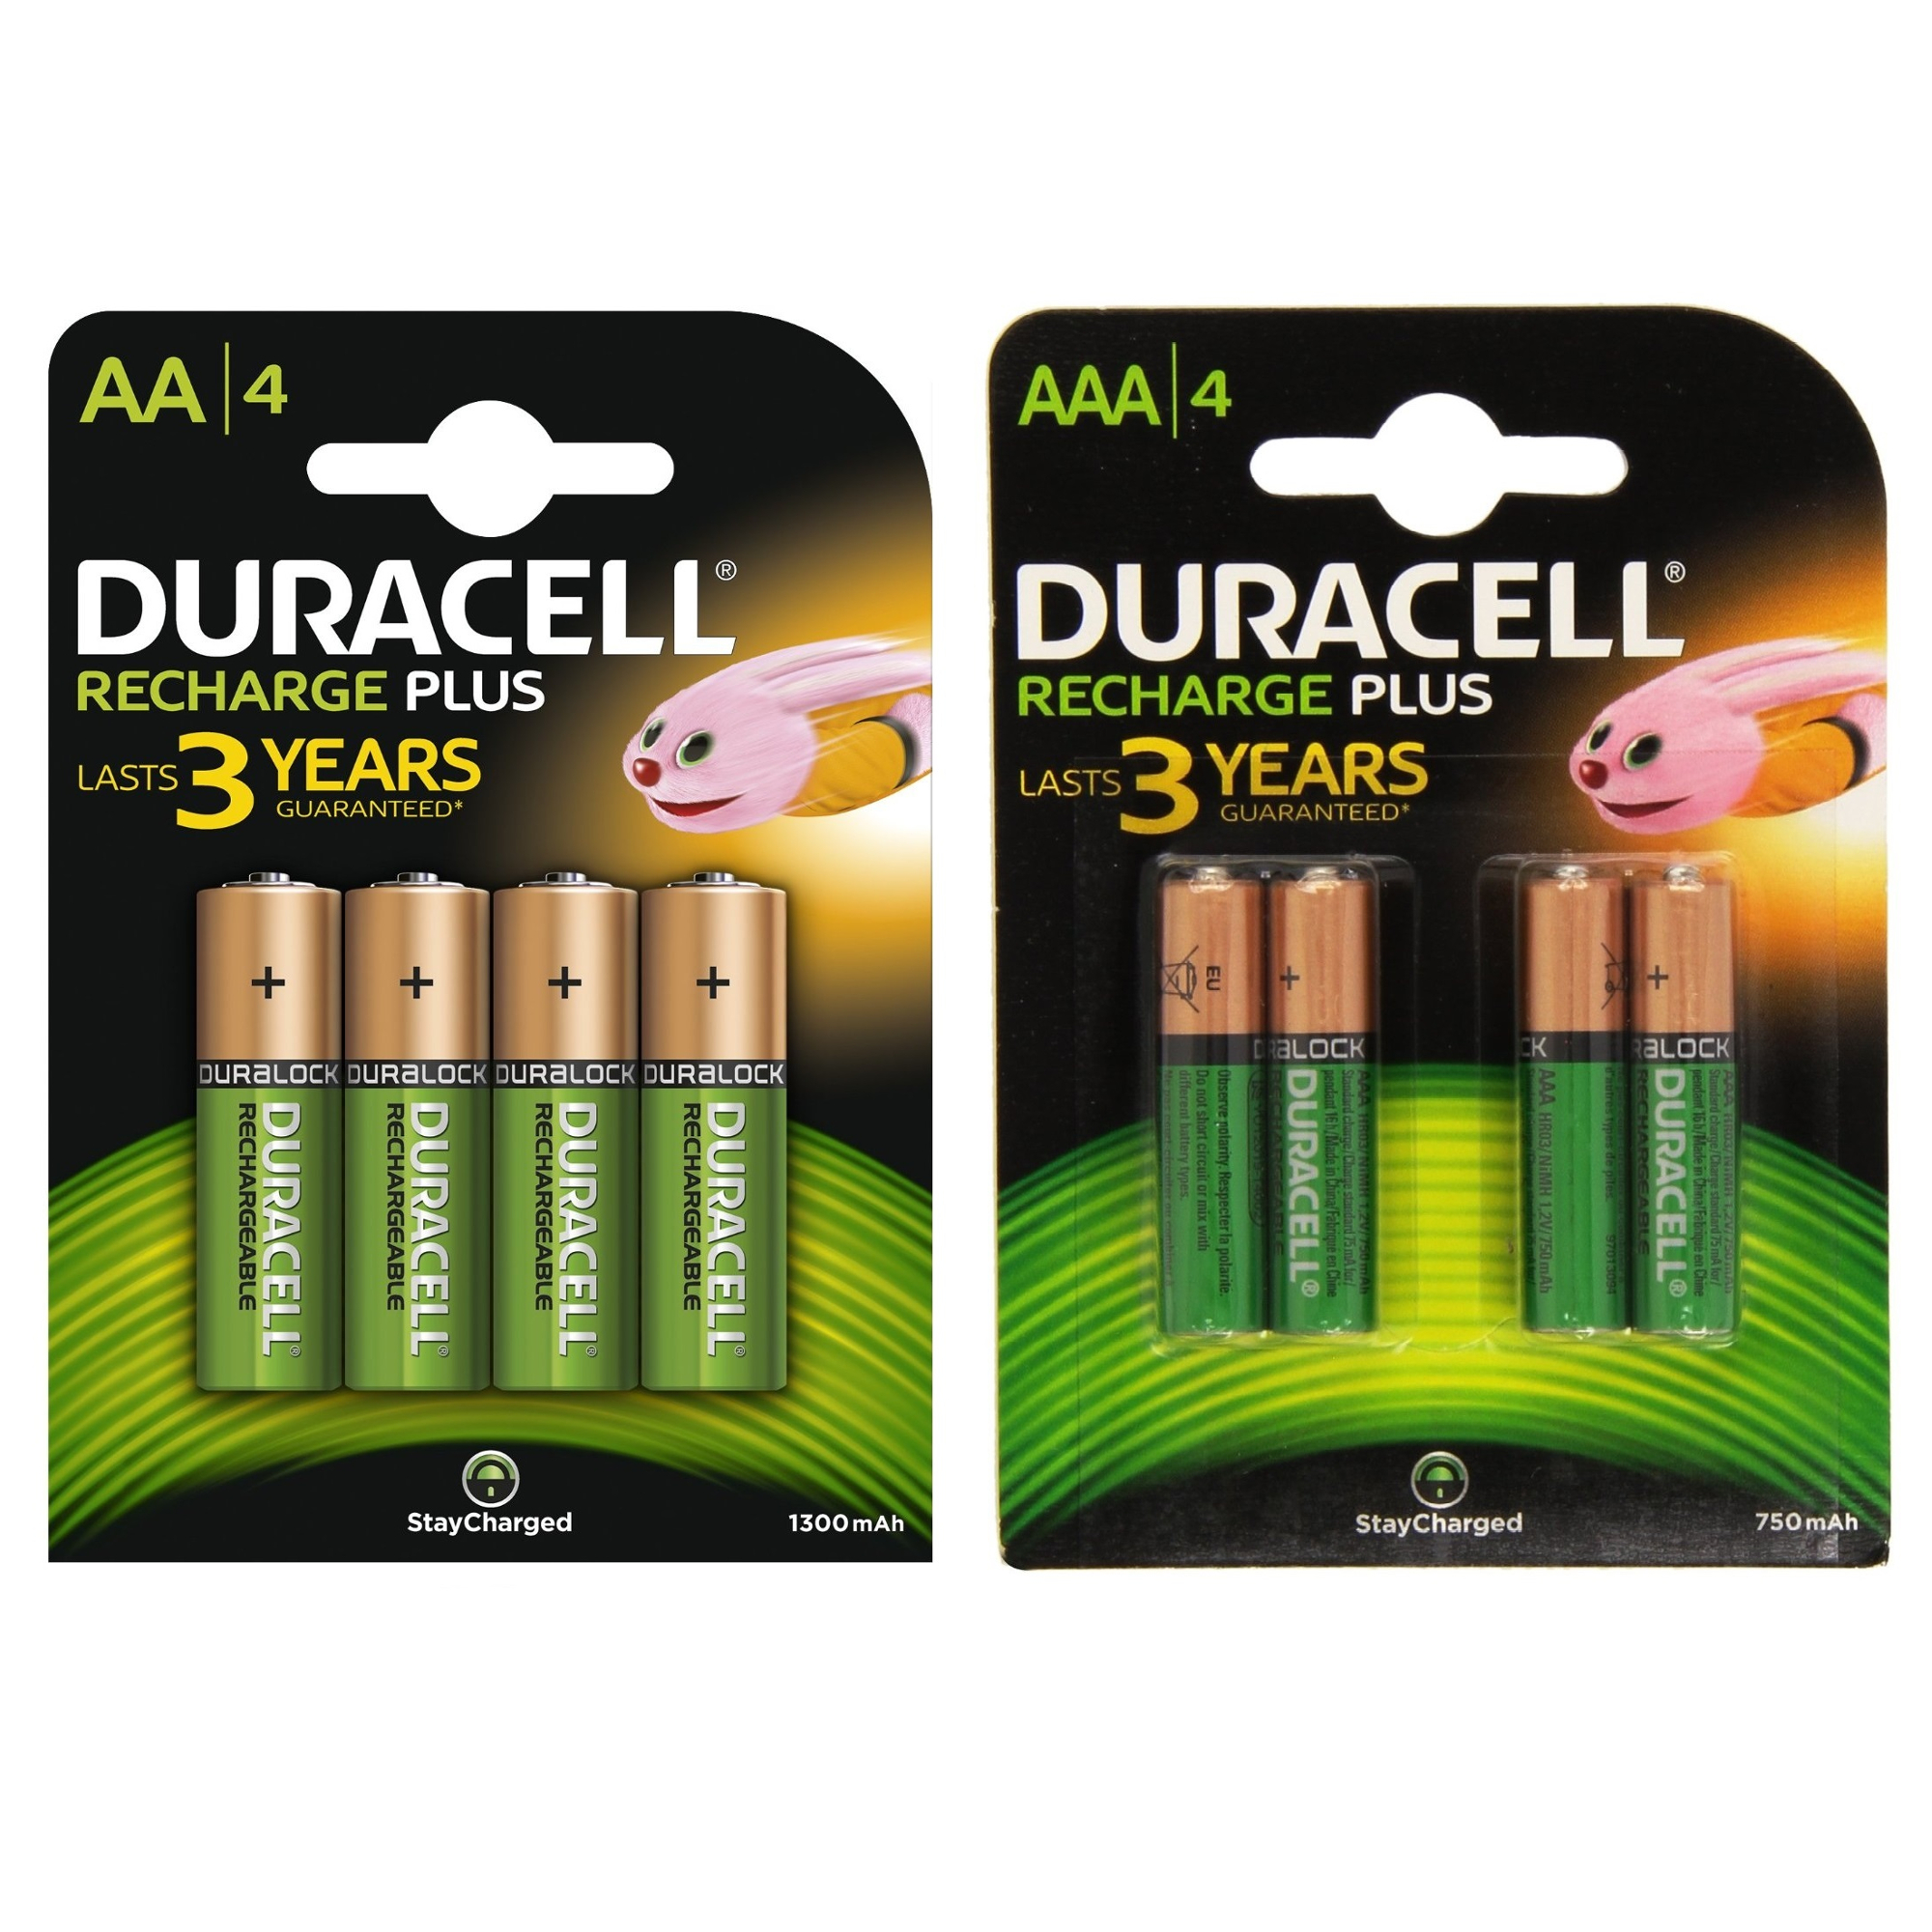 duracell plus aa aaa rechargeable t l commande pile pour appareil photo piles ebay. Black Bedroom Furniture Sets. Home Design Ideas